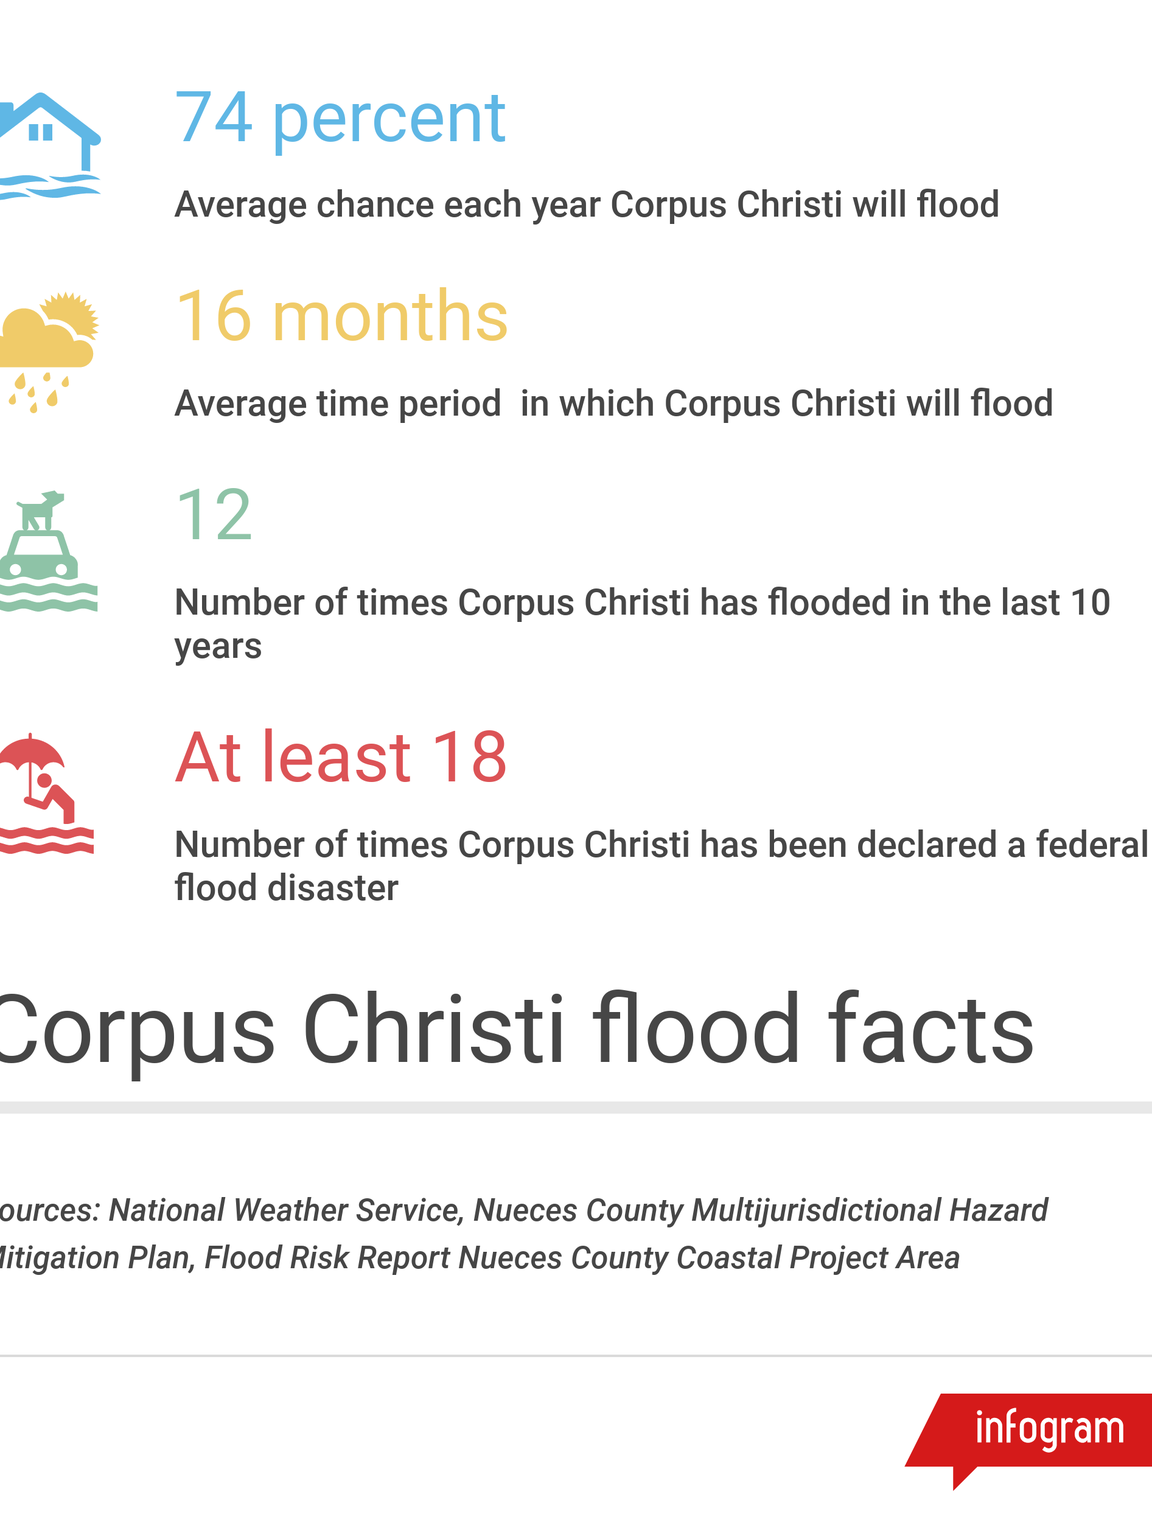 Corpus Christi has a long history of flooding.